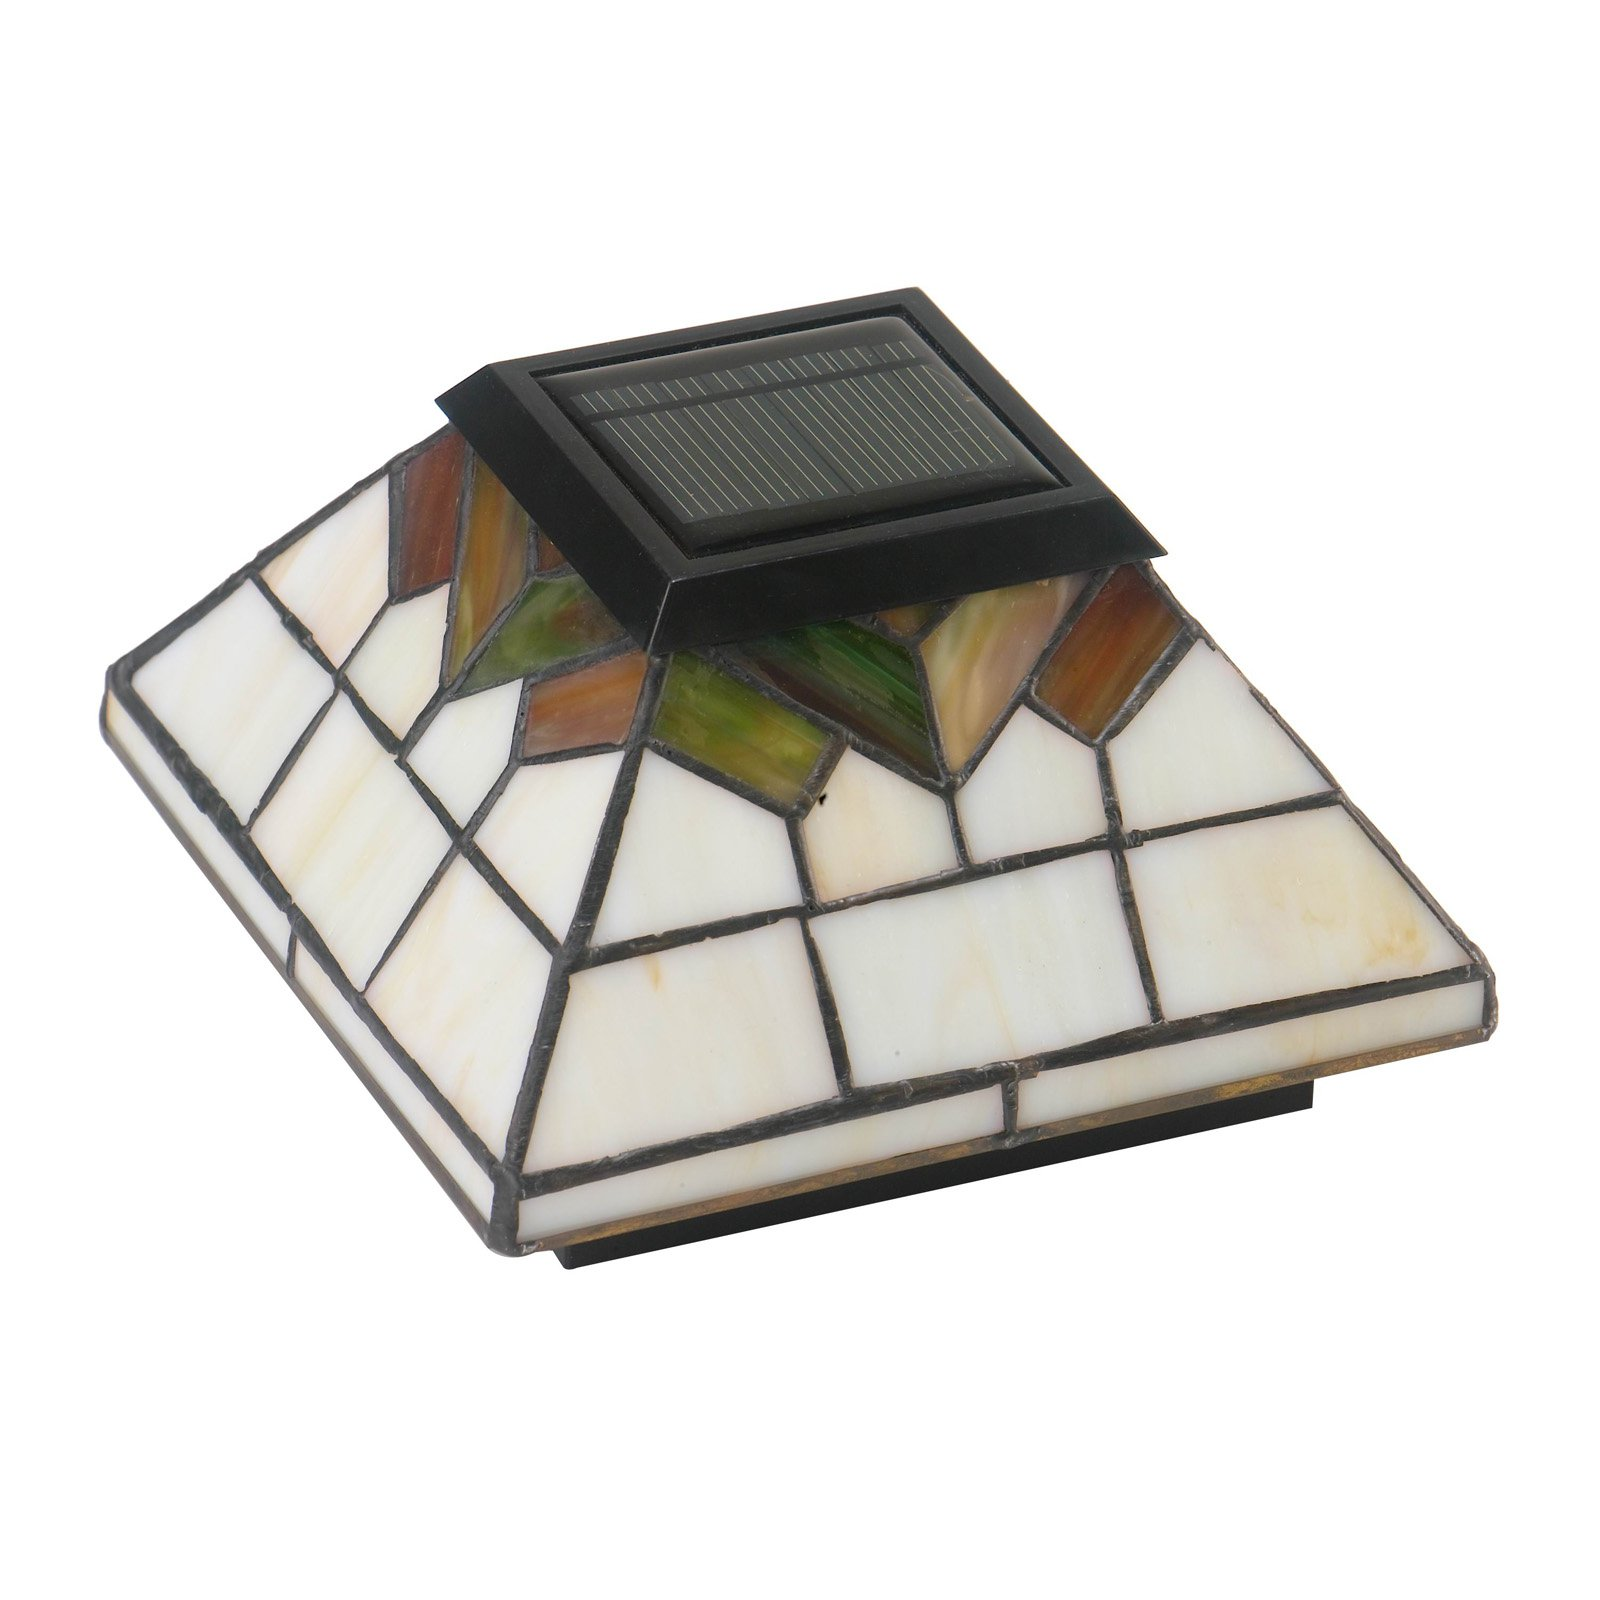 Classy Caps Wellington Stained Glass Outdoor Solar Post Cap